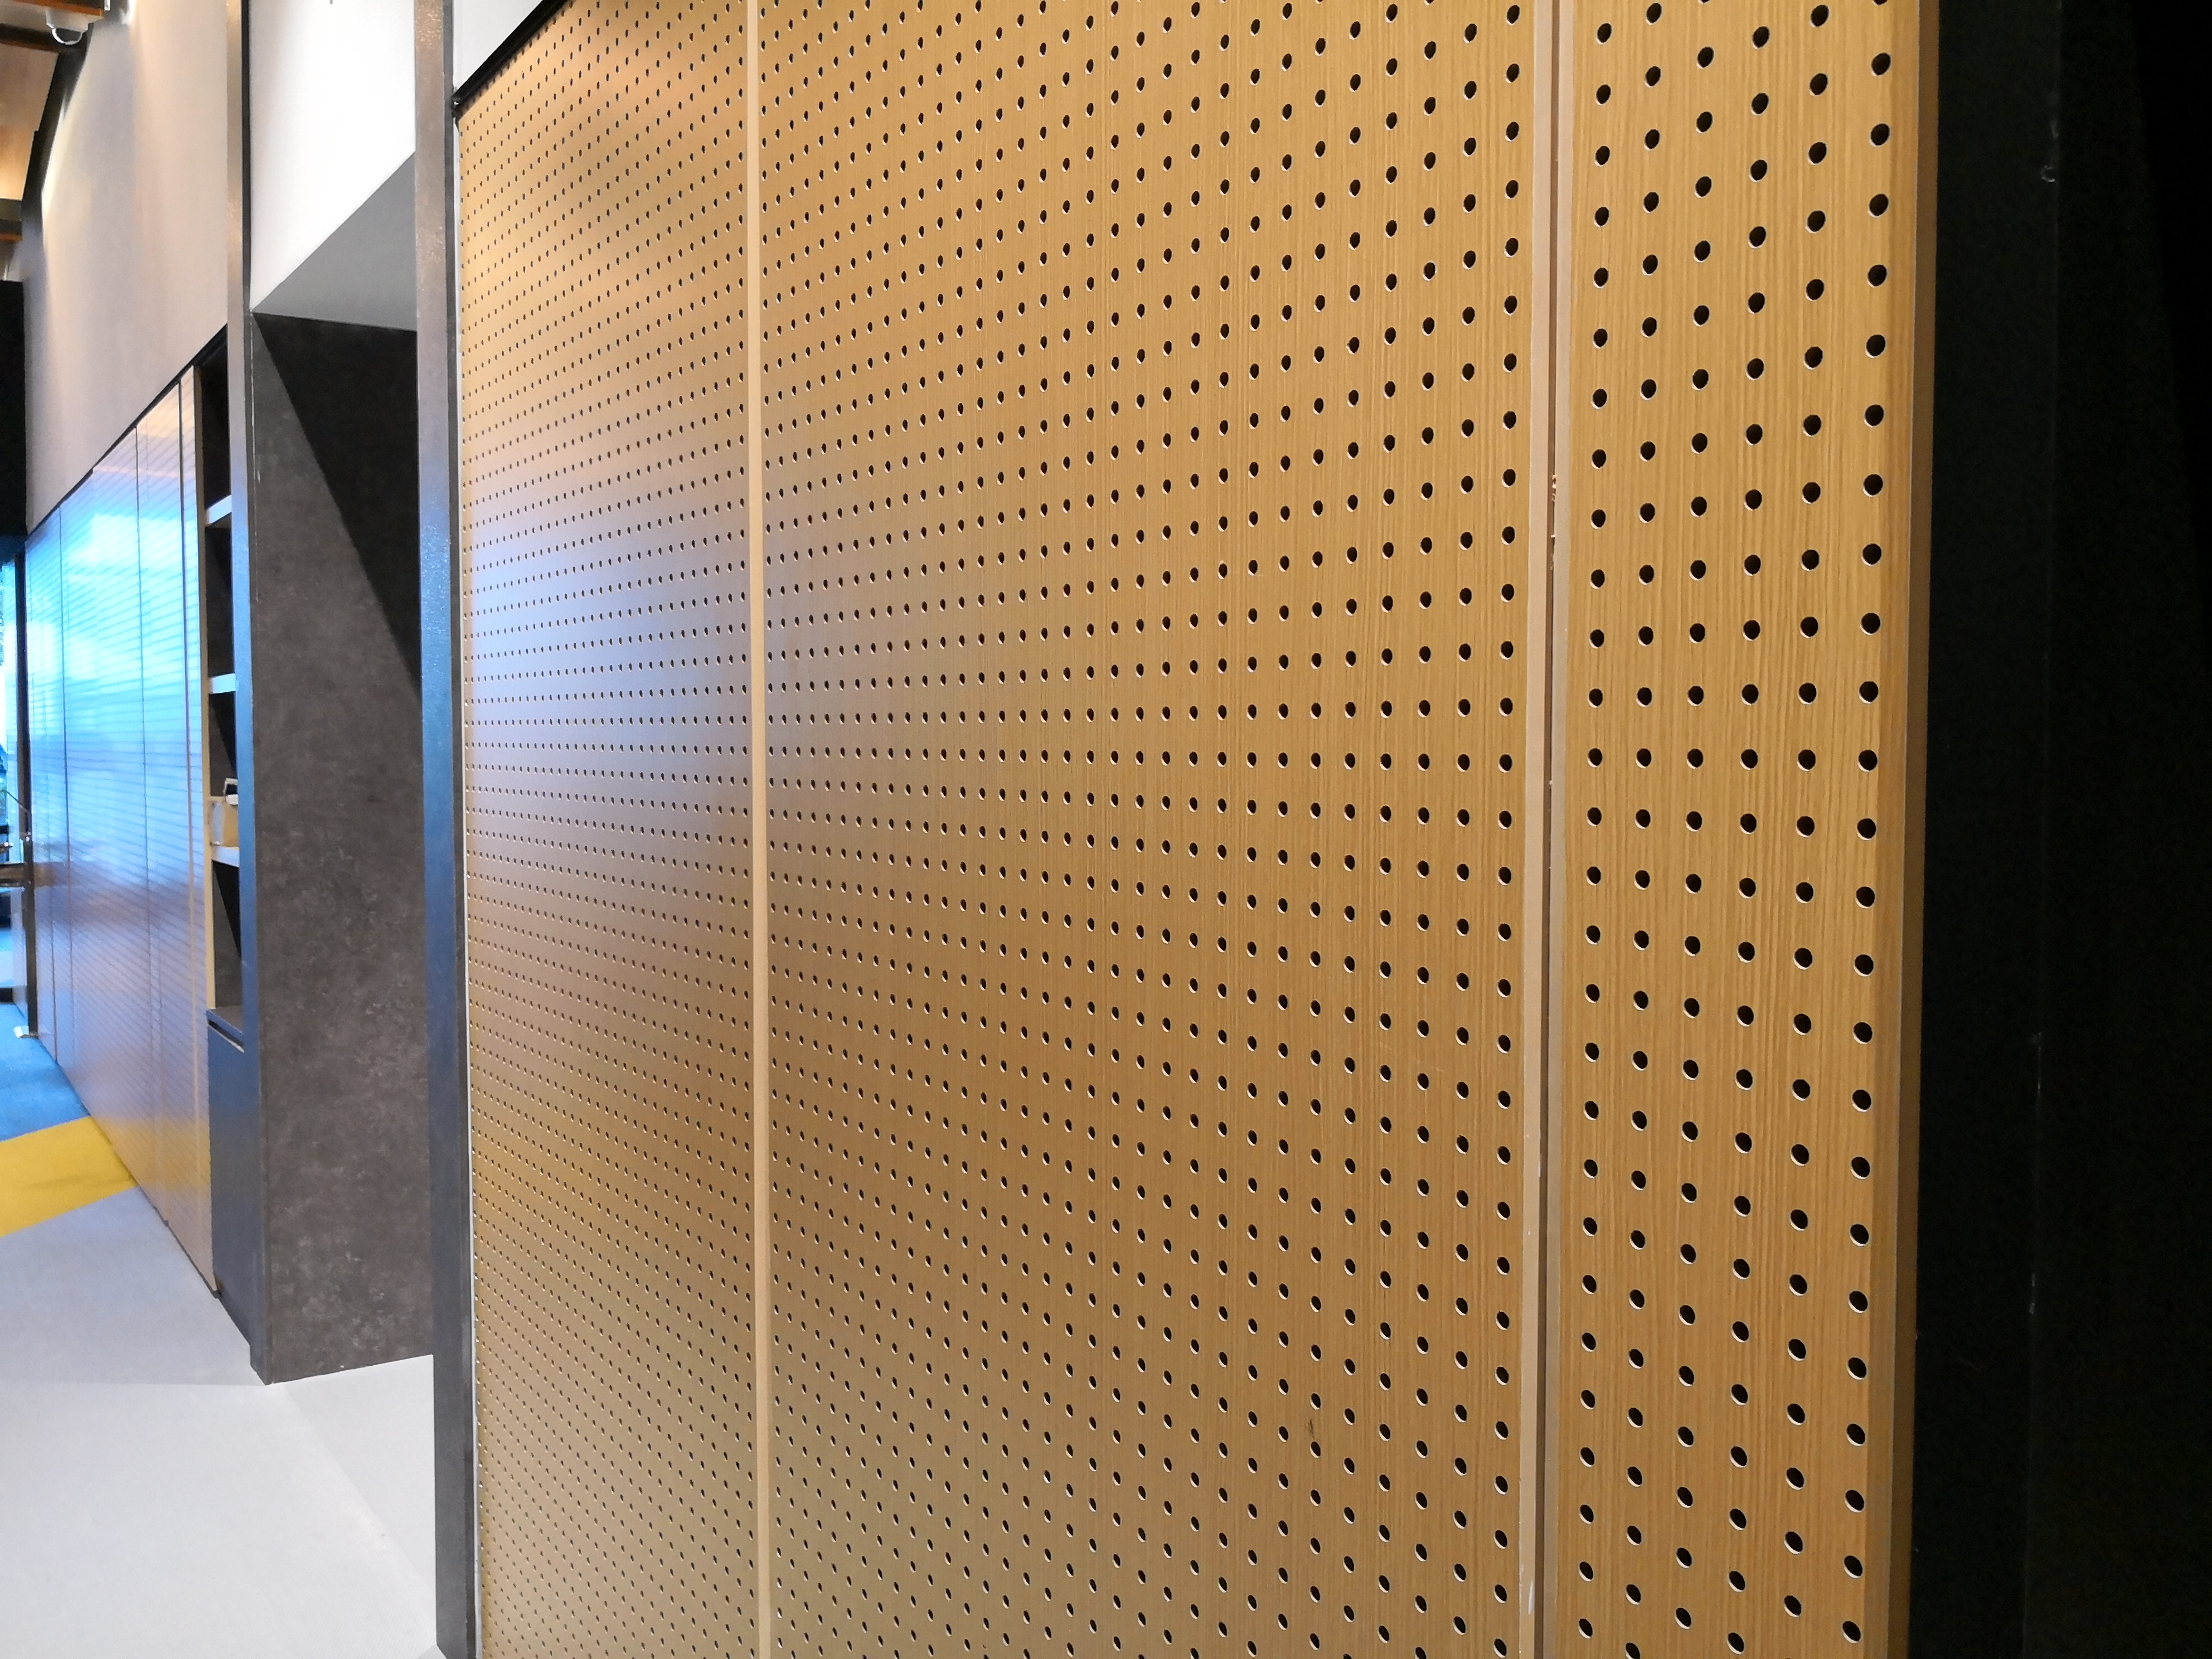 Perforated Plywood Ceiling Panels Www Gradschoolfairs Com